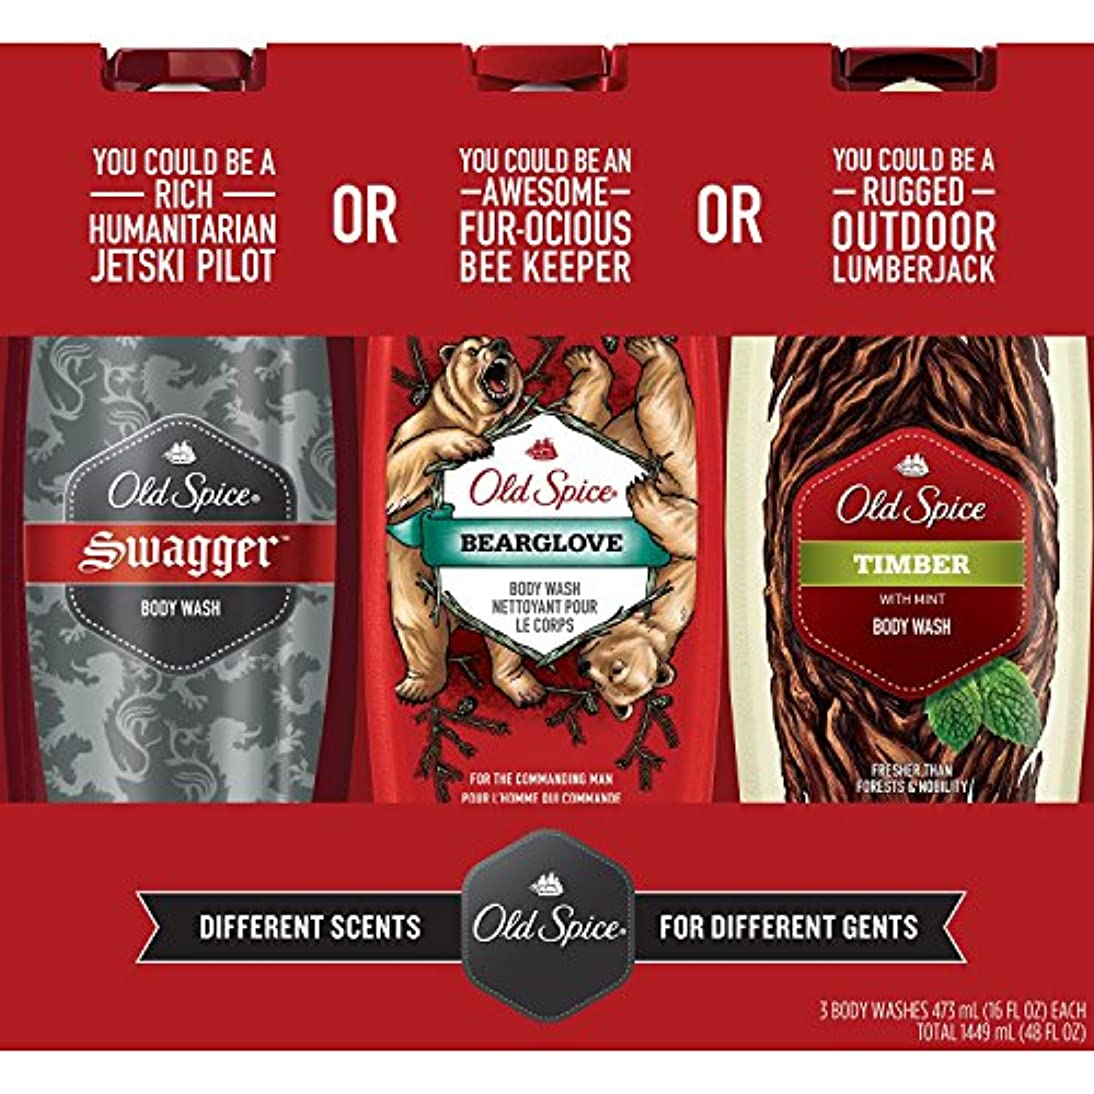 セラフ自宅でお風呂Old Spice Body Wash Variety Pack (16 fl. oz., 3 pk by Procter & Gamble [並行輸入品]